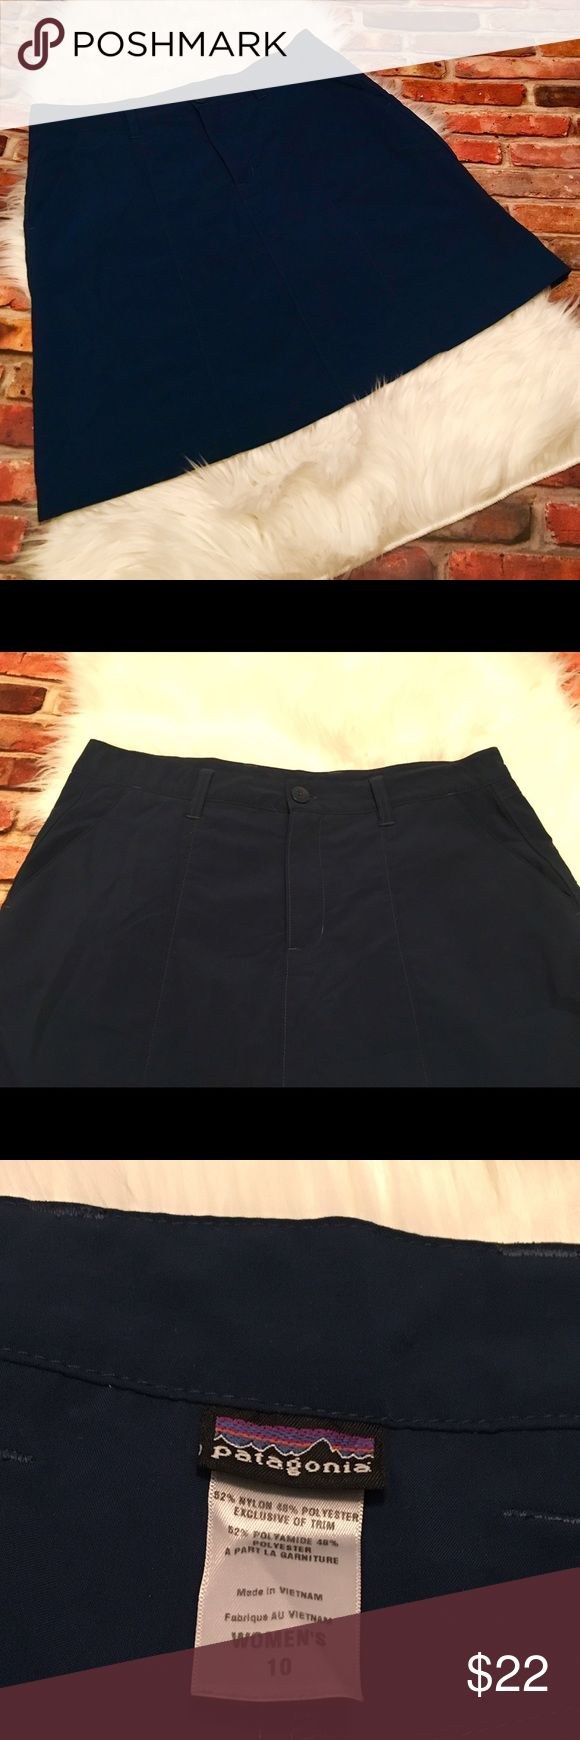 Patagonia Skort Size 10 Preowned Patagonia Skort. Size 10. Has two front pockets & two zipper pockets on back.  52% Nylon & 48% Cotton. Has built in shorts. Zips & buttons on front. This has been preloved & is in excellent condition. (It was hard to capture true color of this, it's a medium bluish like color. It is NOT navy blue). Measurements are approximate. See all pictures as you will receive as pictured. No trades/No holds. Reasonable offers are welcome. Bundle & save $$. Thanks for…